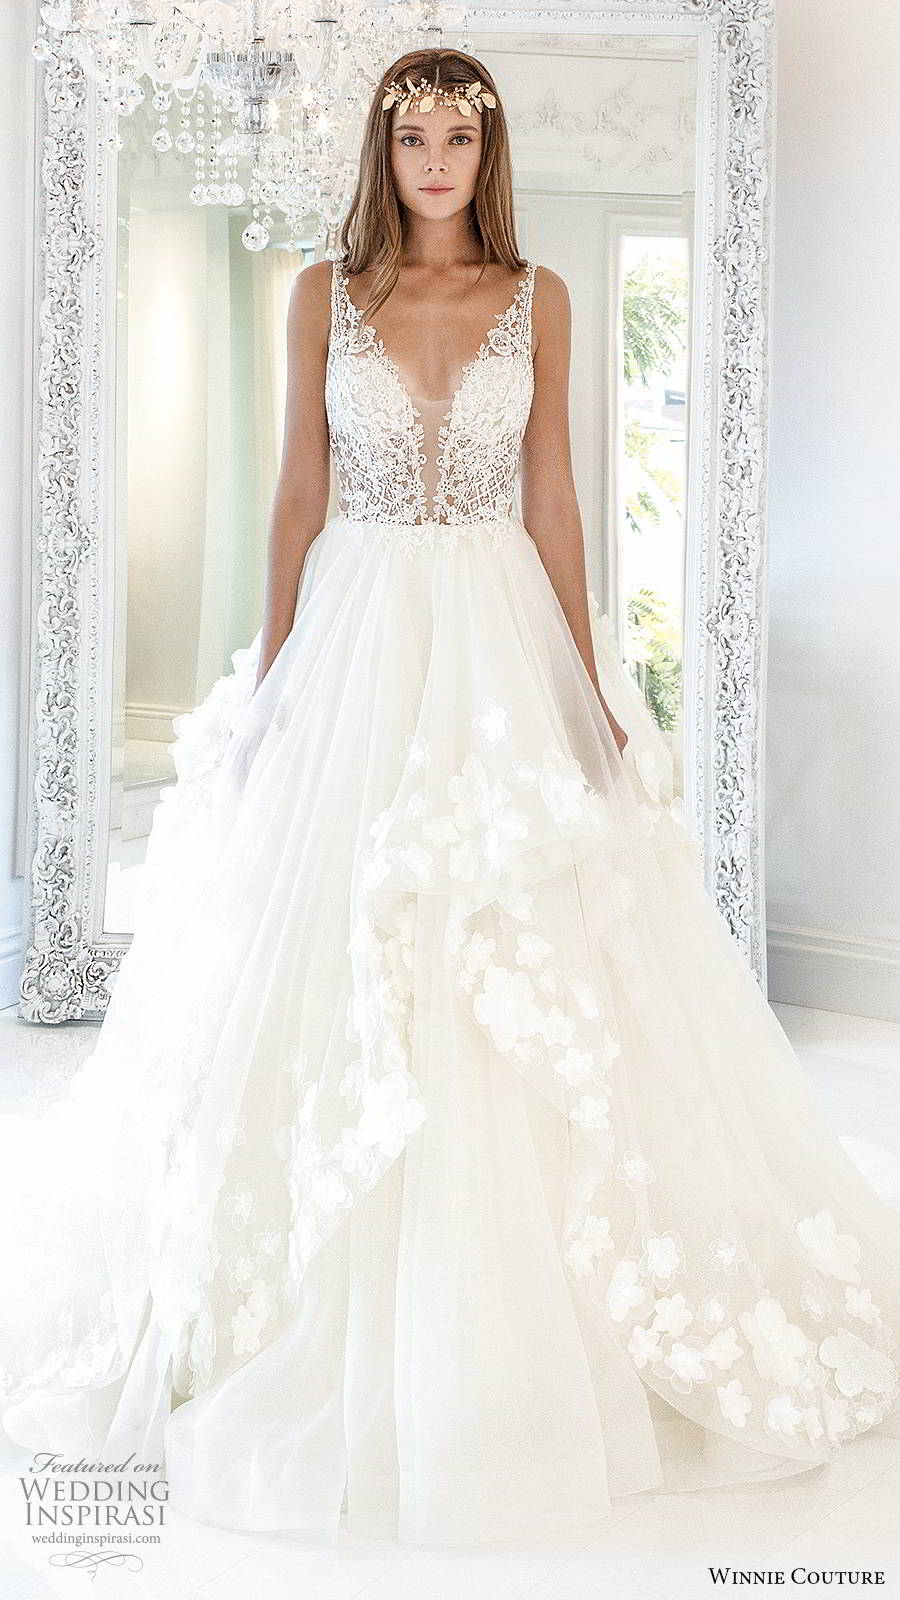 winnie couture 2019 bridal sleeveless straps plunging v neckline embellished bodice tiered skirt a line ball gown romantic wedding dress chapel train (2) mv